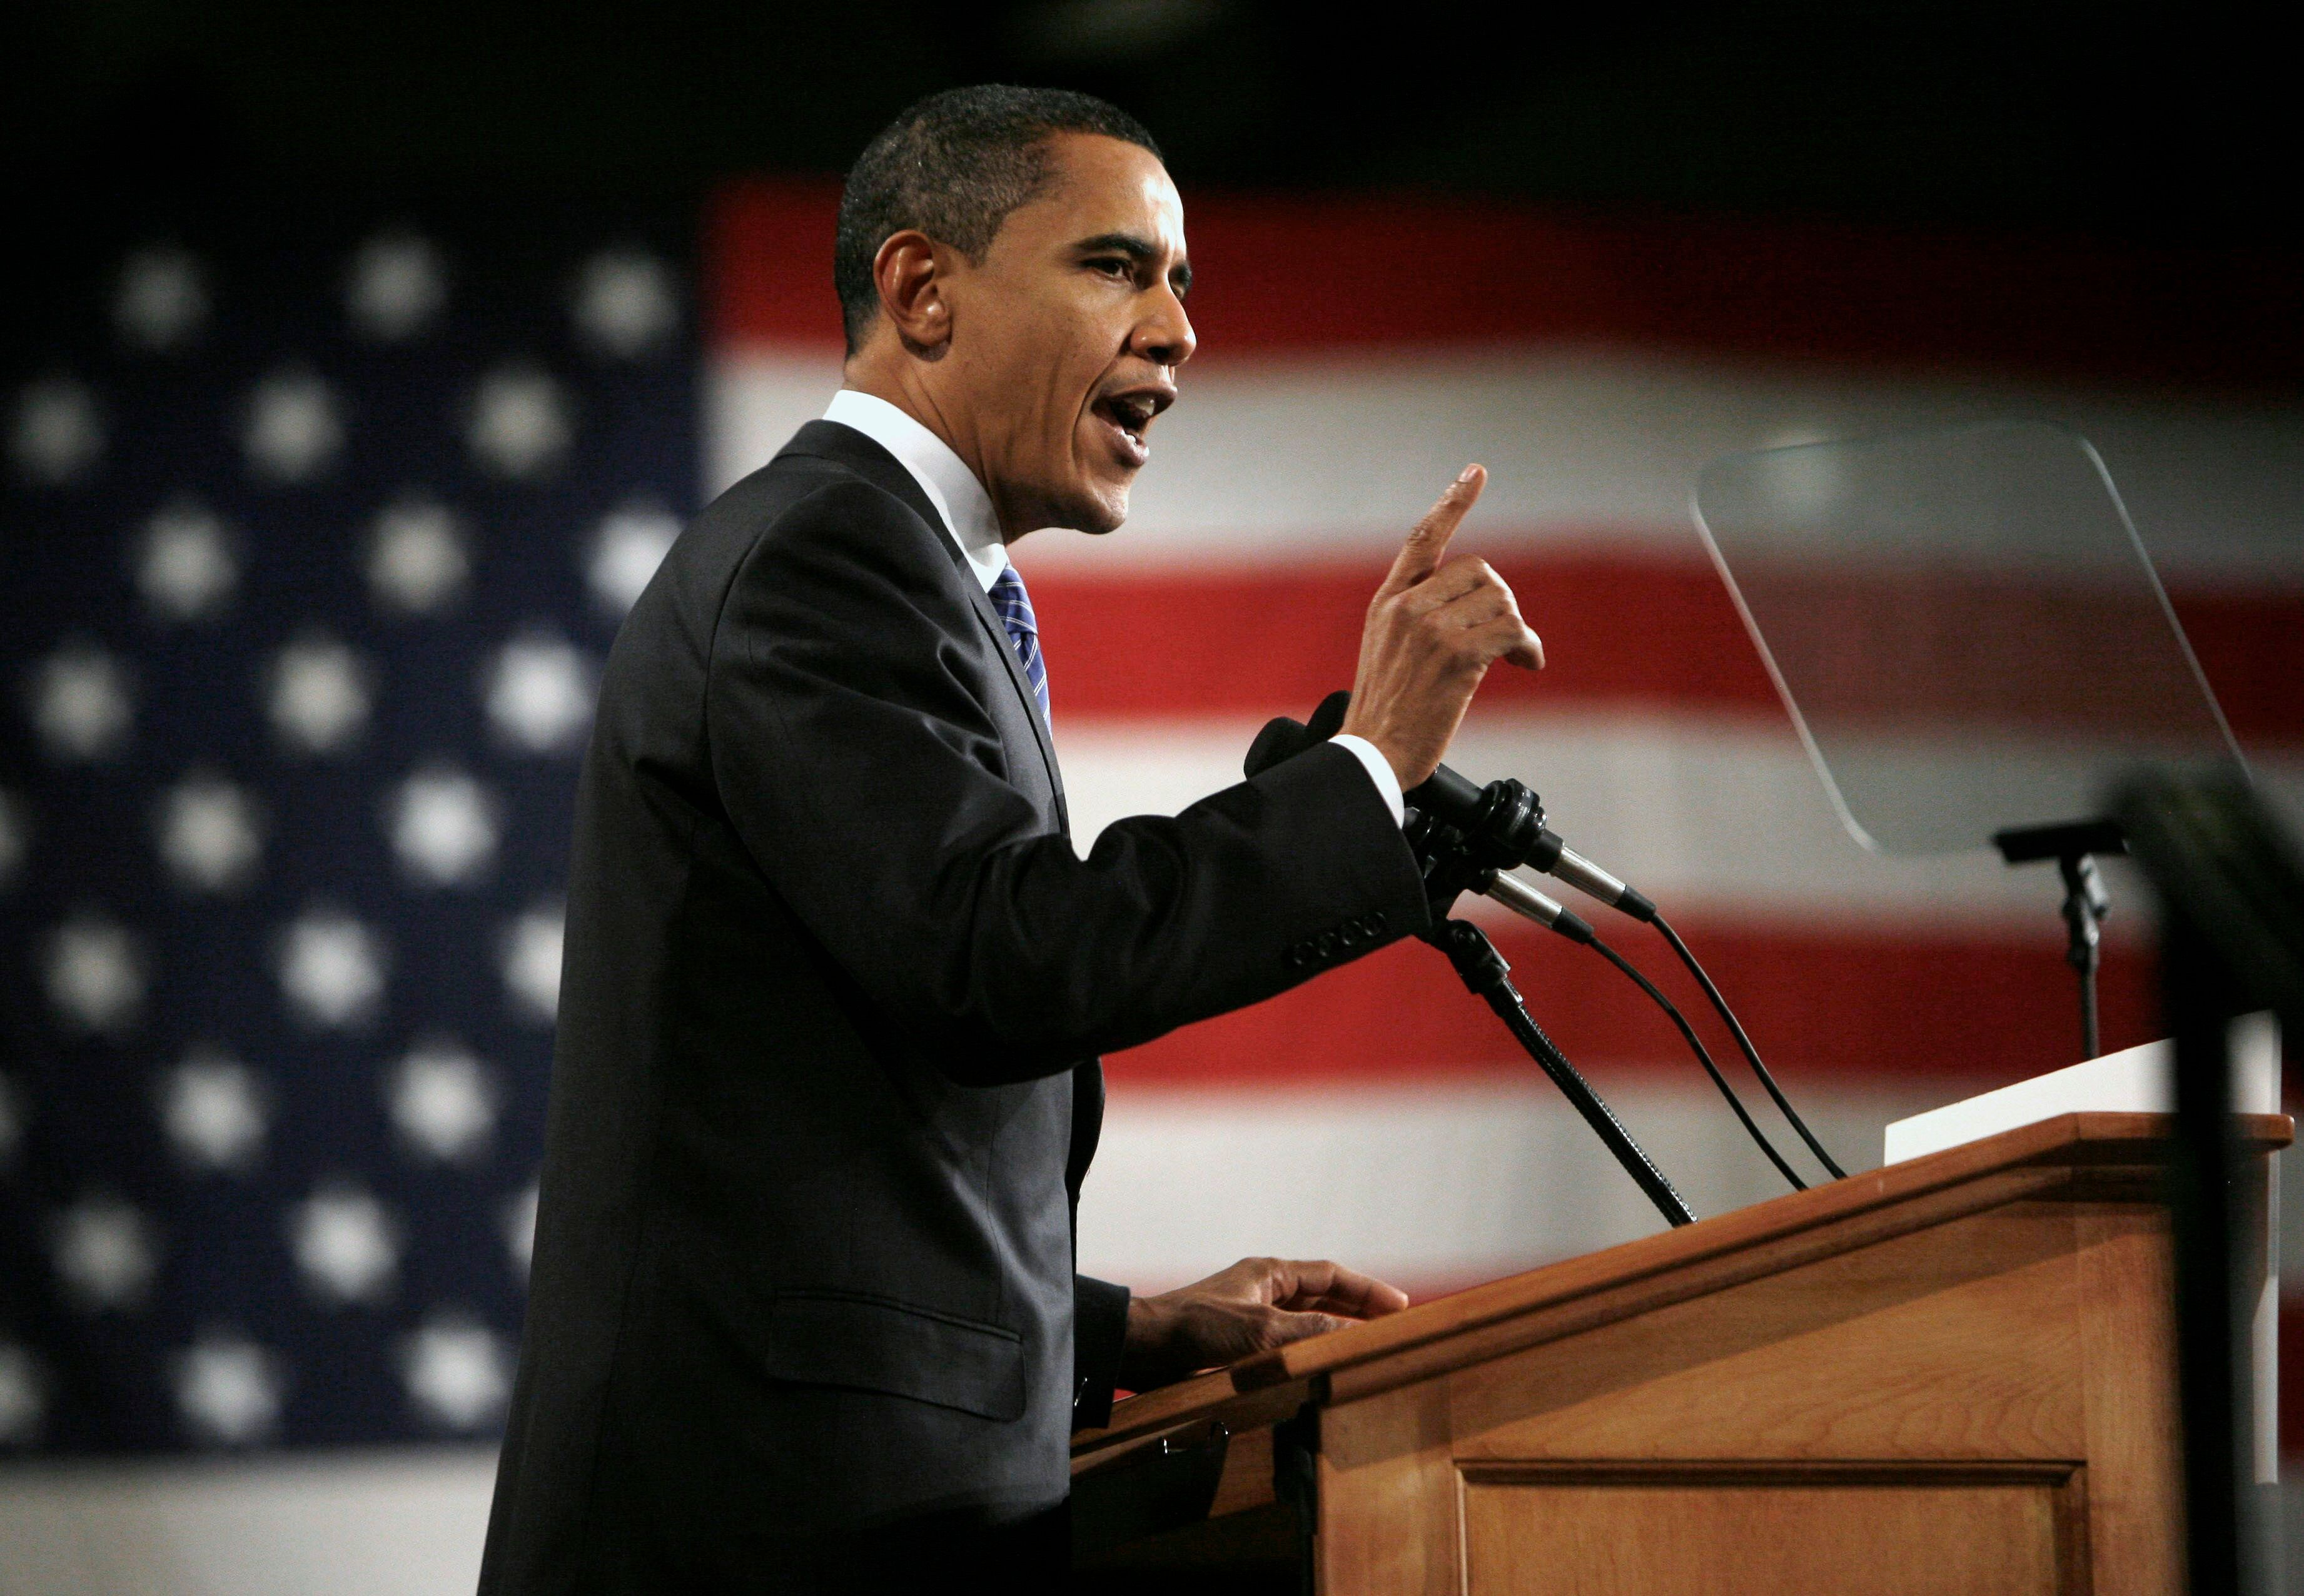 Then-Democratic presidential candidate Barack Obama speaks after winning the Iowa caucus on Jan. 3, 2008. He won in part thanks to a record-breaking turnout.